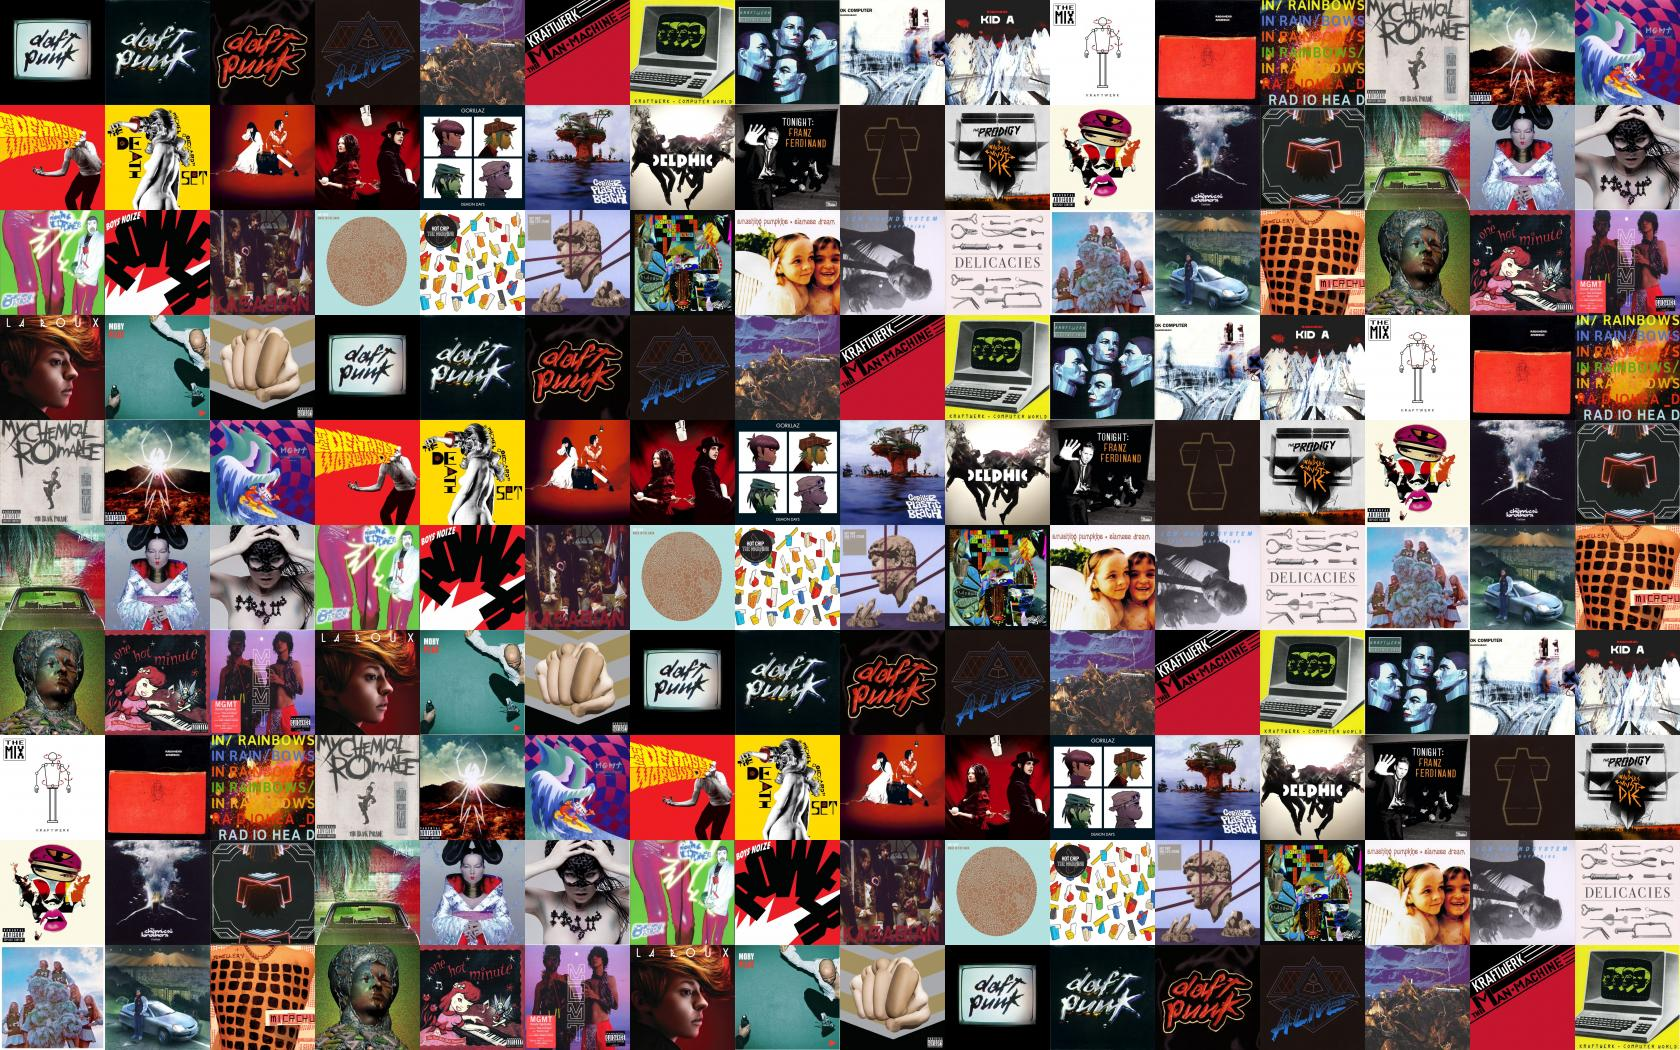 Daft Punk Human After All Discovery Homework Alive Wallpaper Tiled Desktop